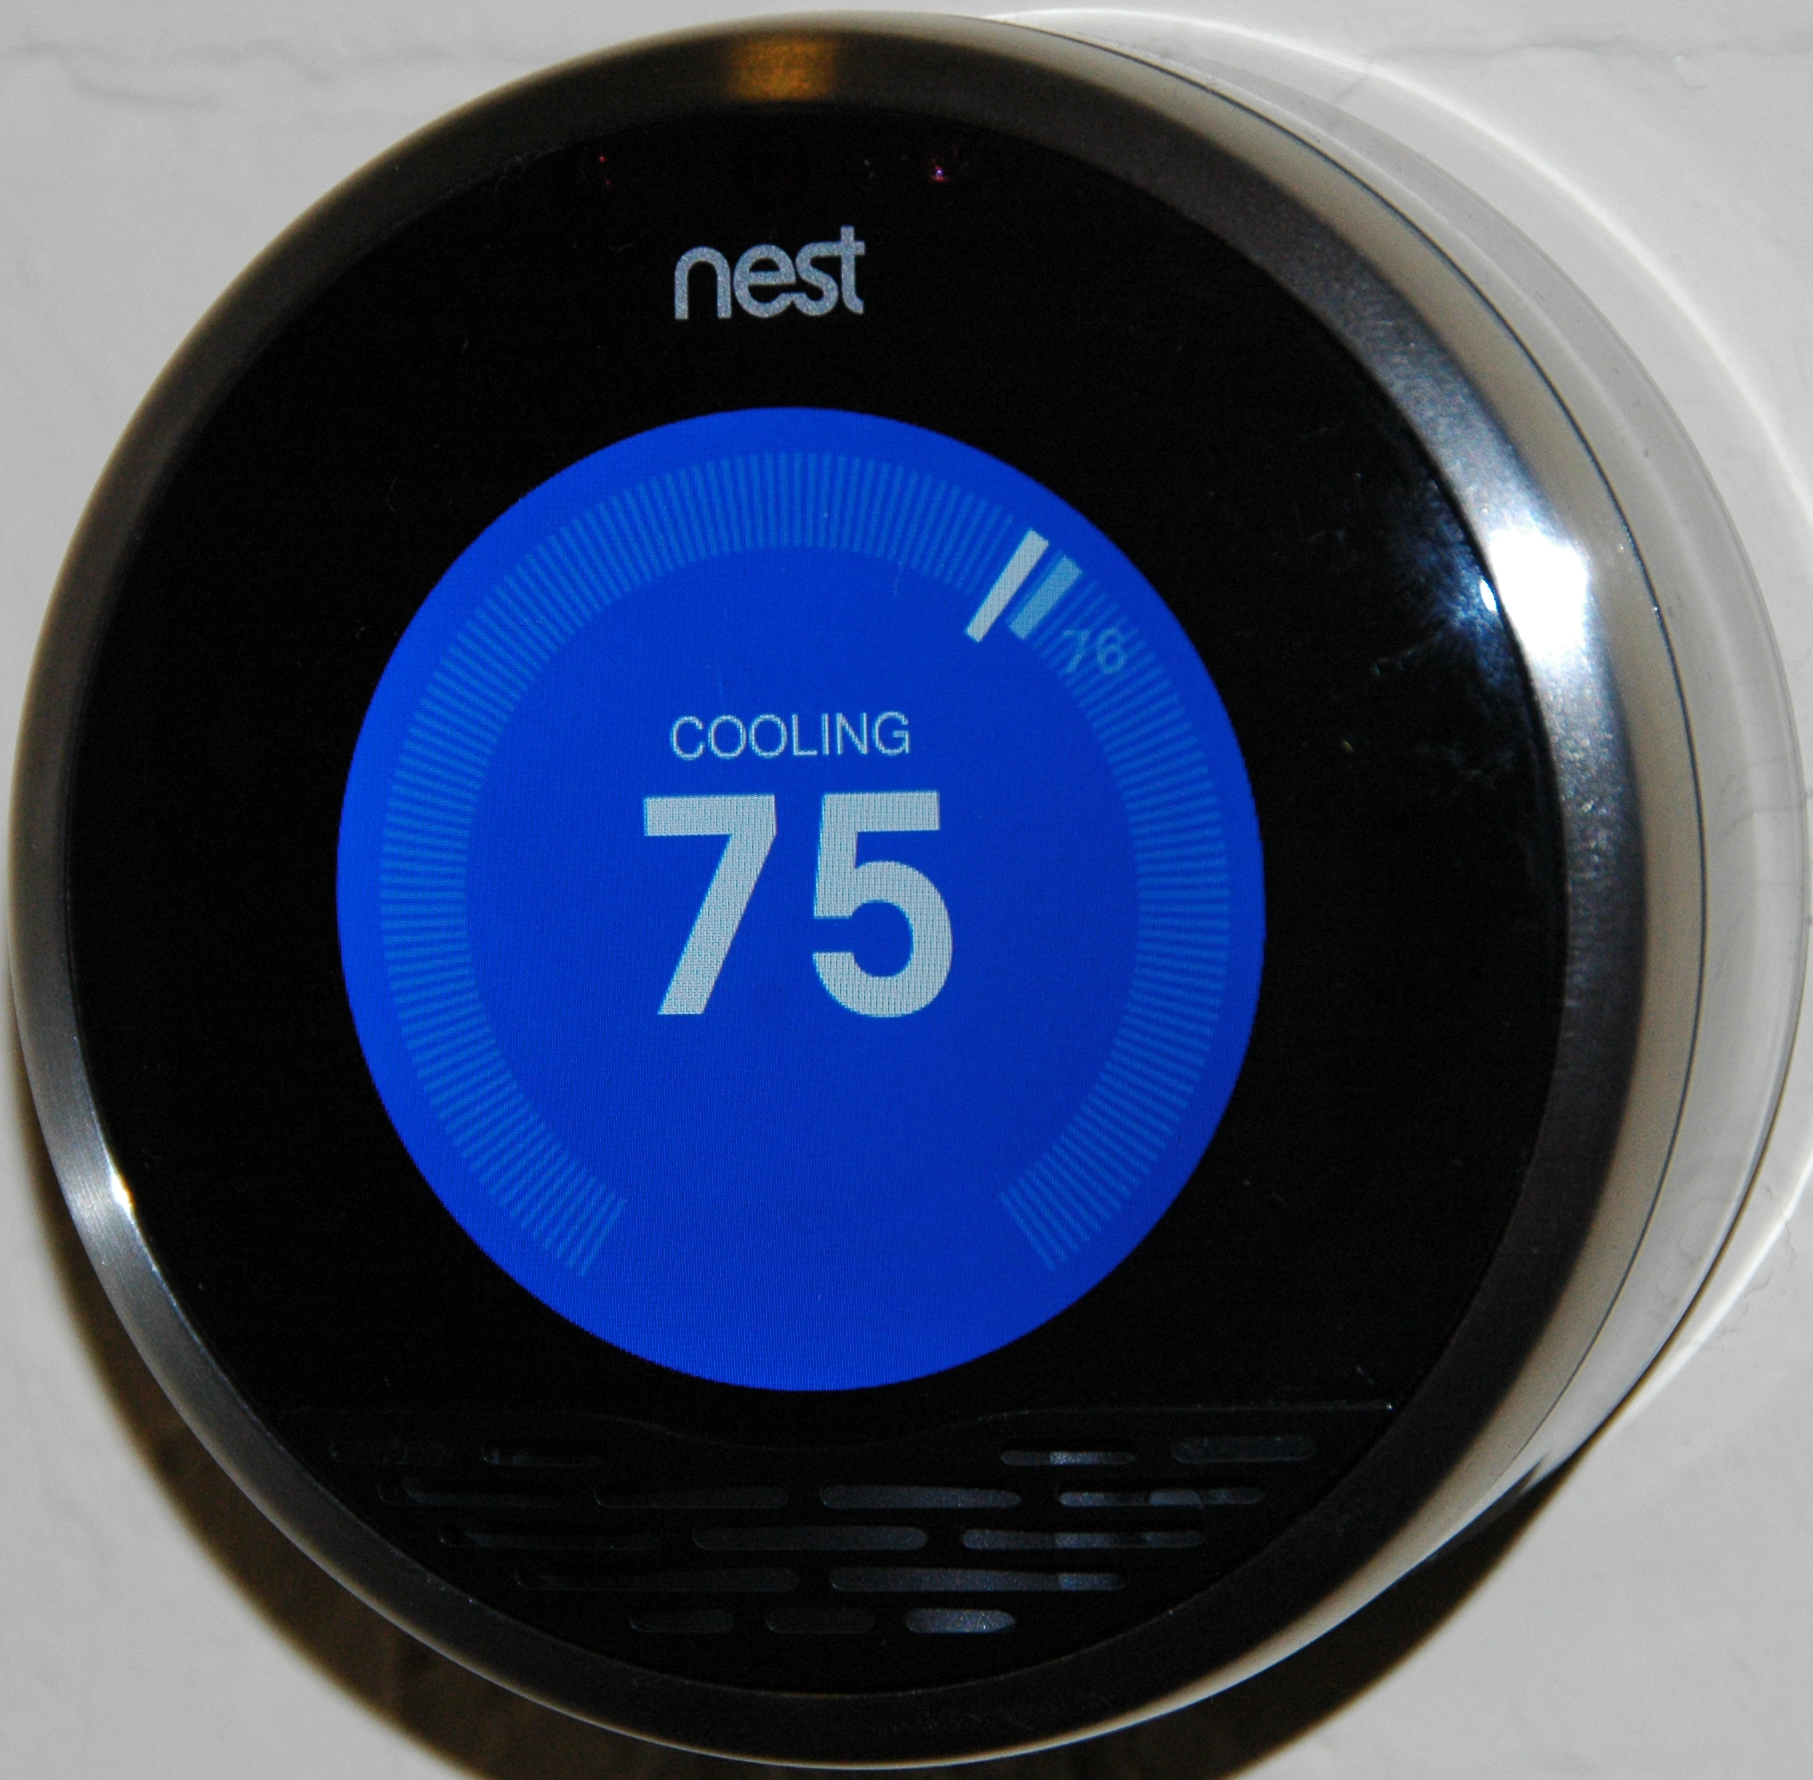 automated thermostats